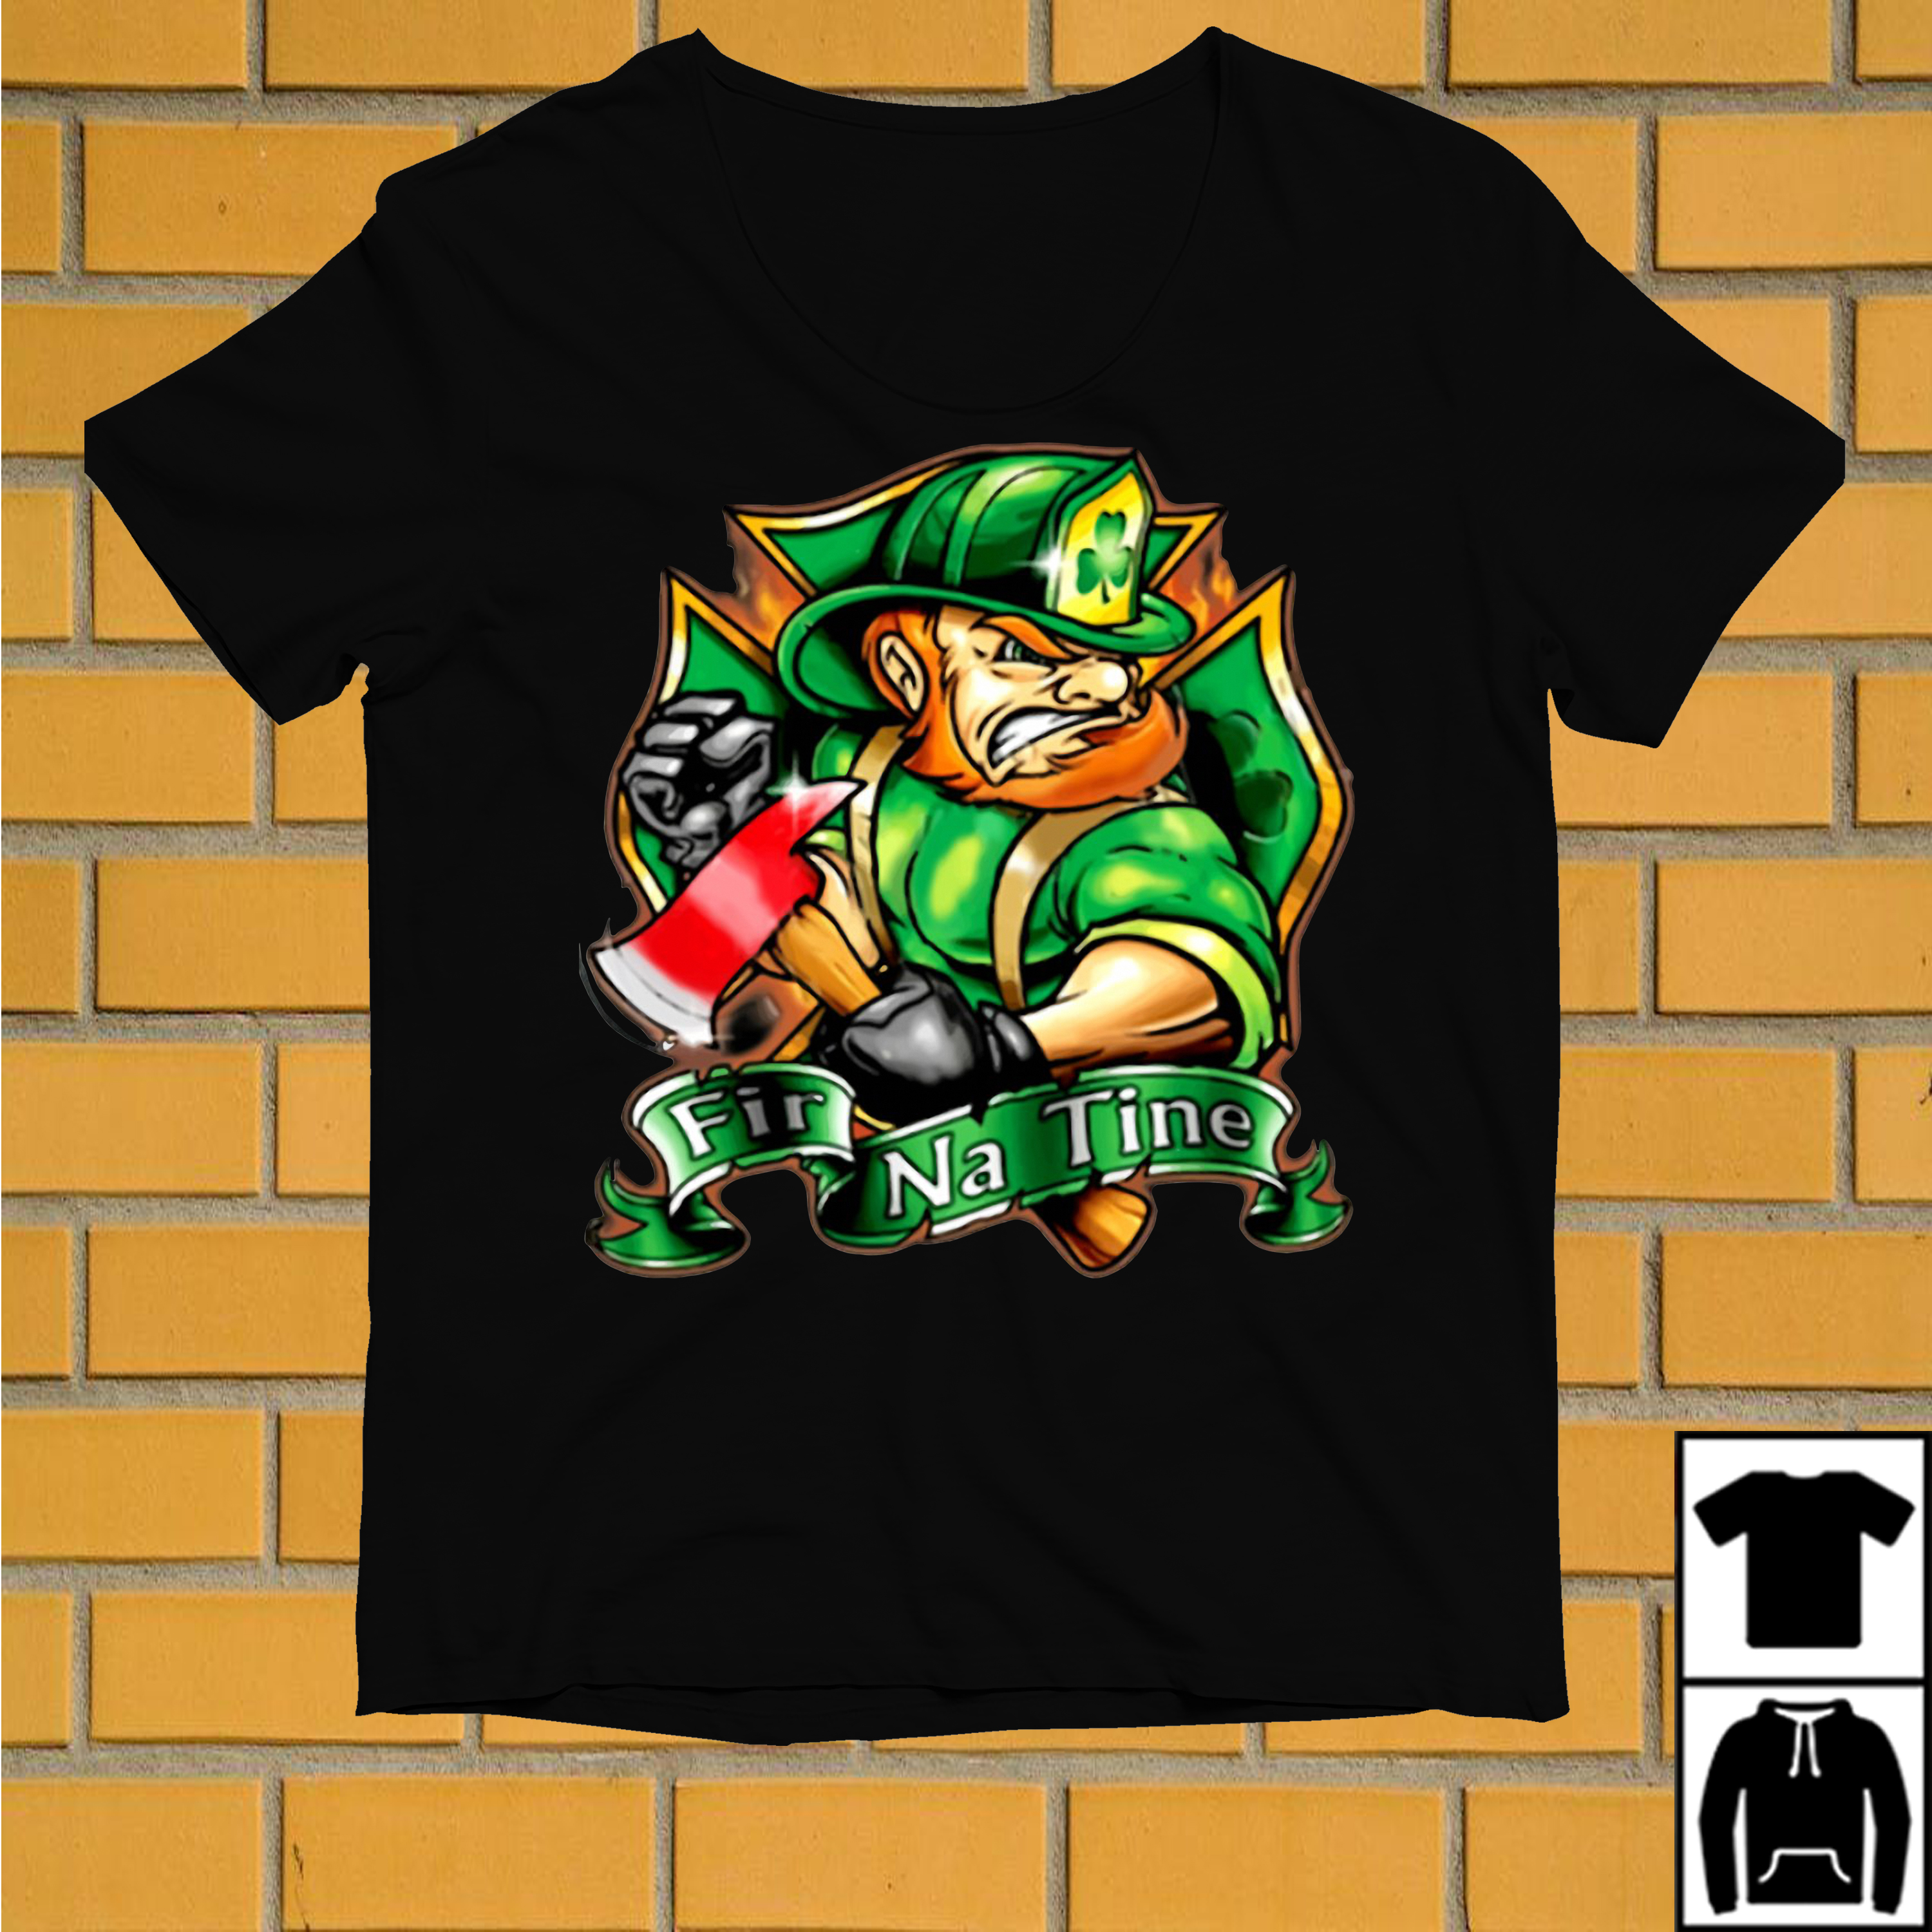 Firefighter Fir Na Tine St. Patrick's day shirt